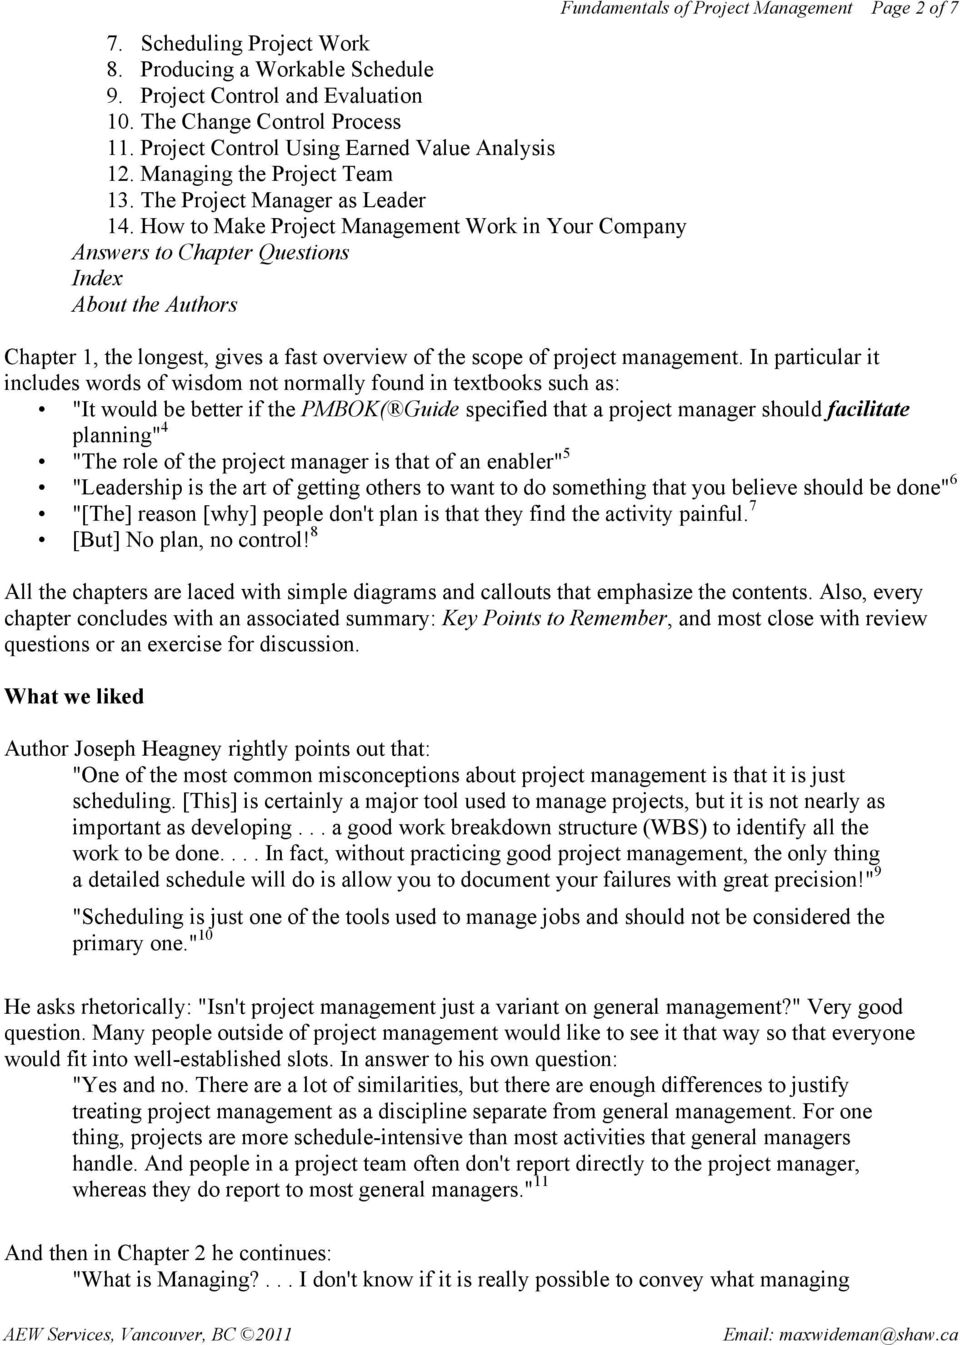 How to Make Project Management Work in Your Company Answers to Chapter Questions Index About the Authors Fundamentals of Project Management Page 2 of 7 Chapter 1, the longest, gives a fast overview